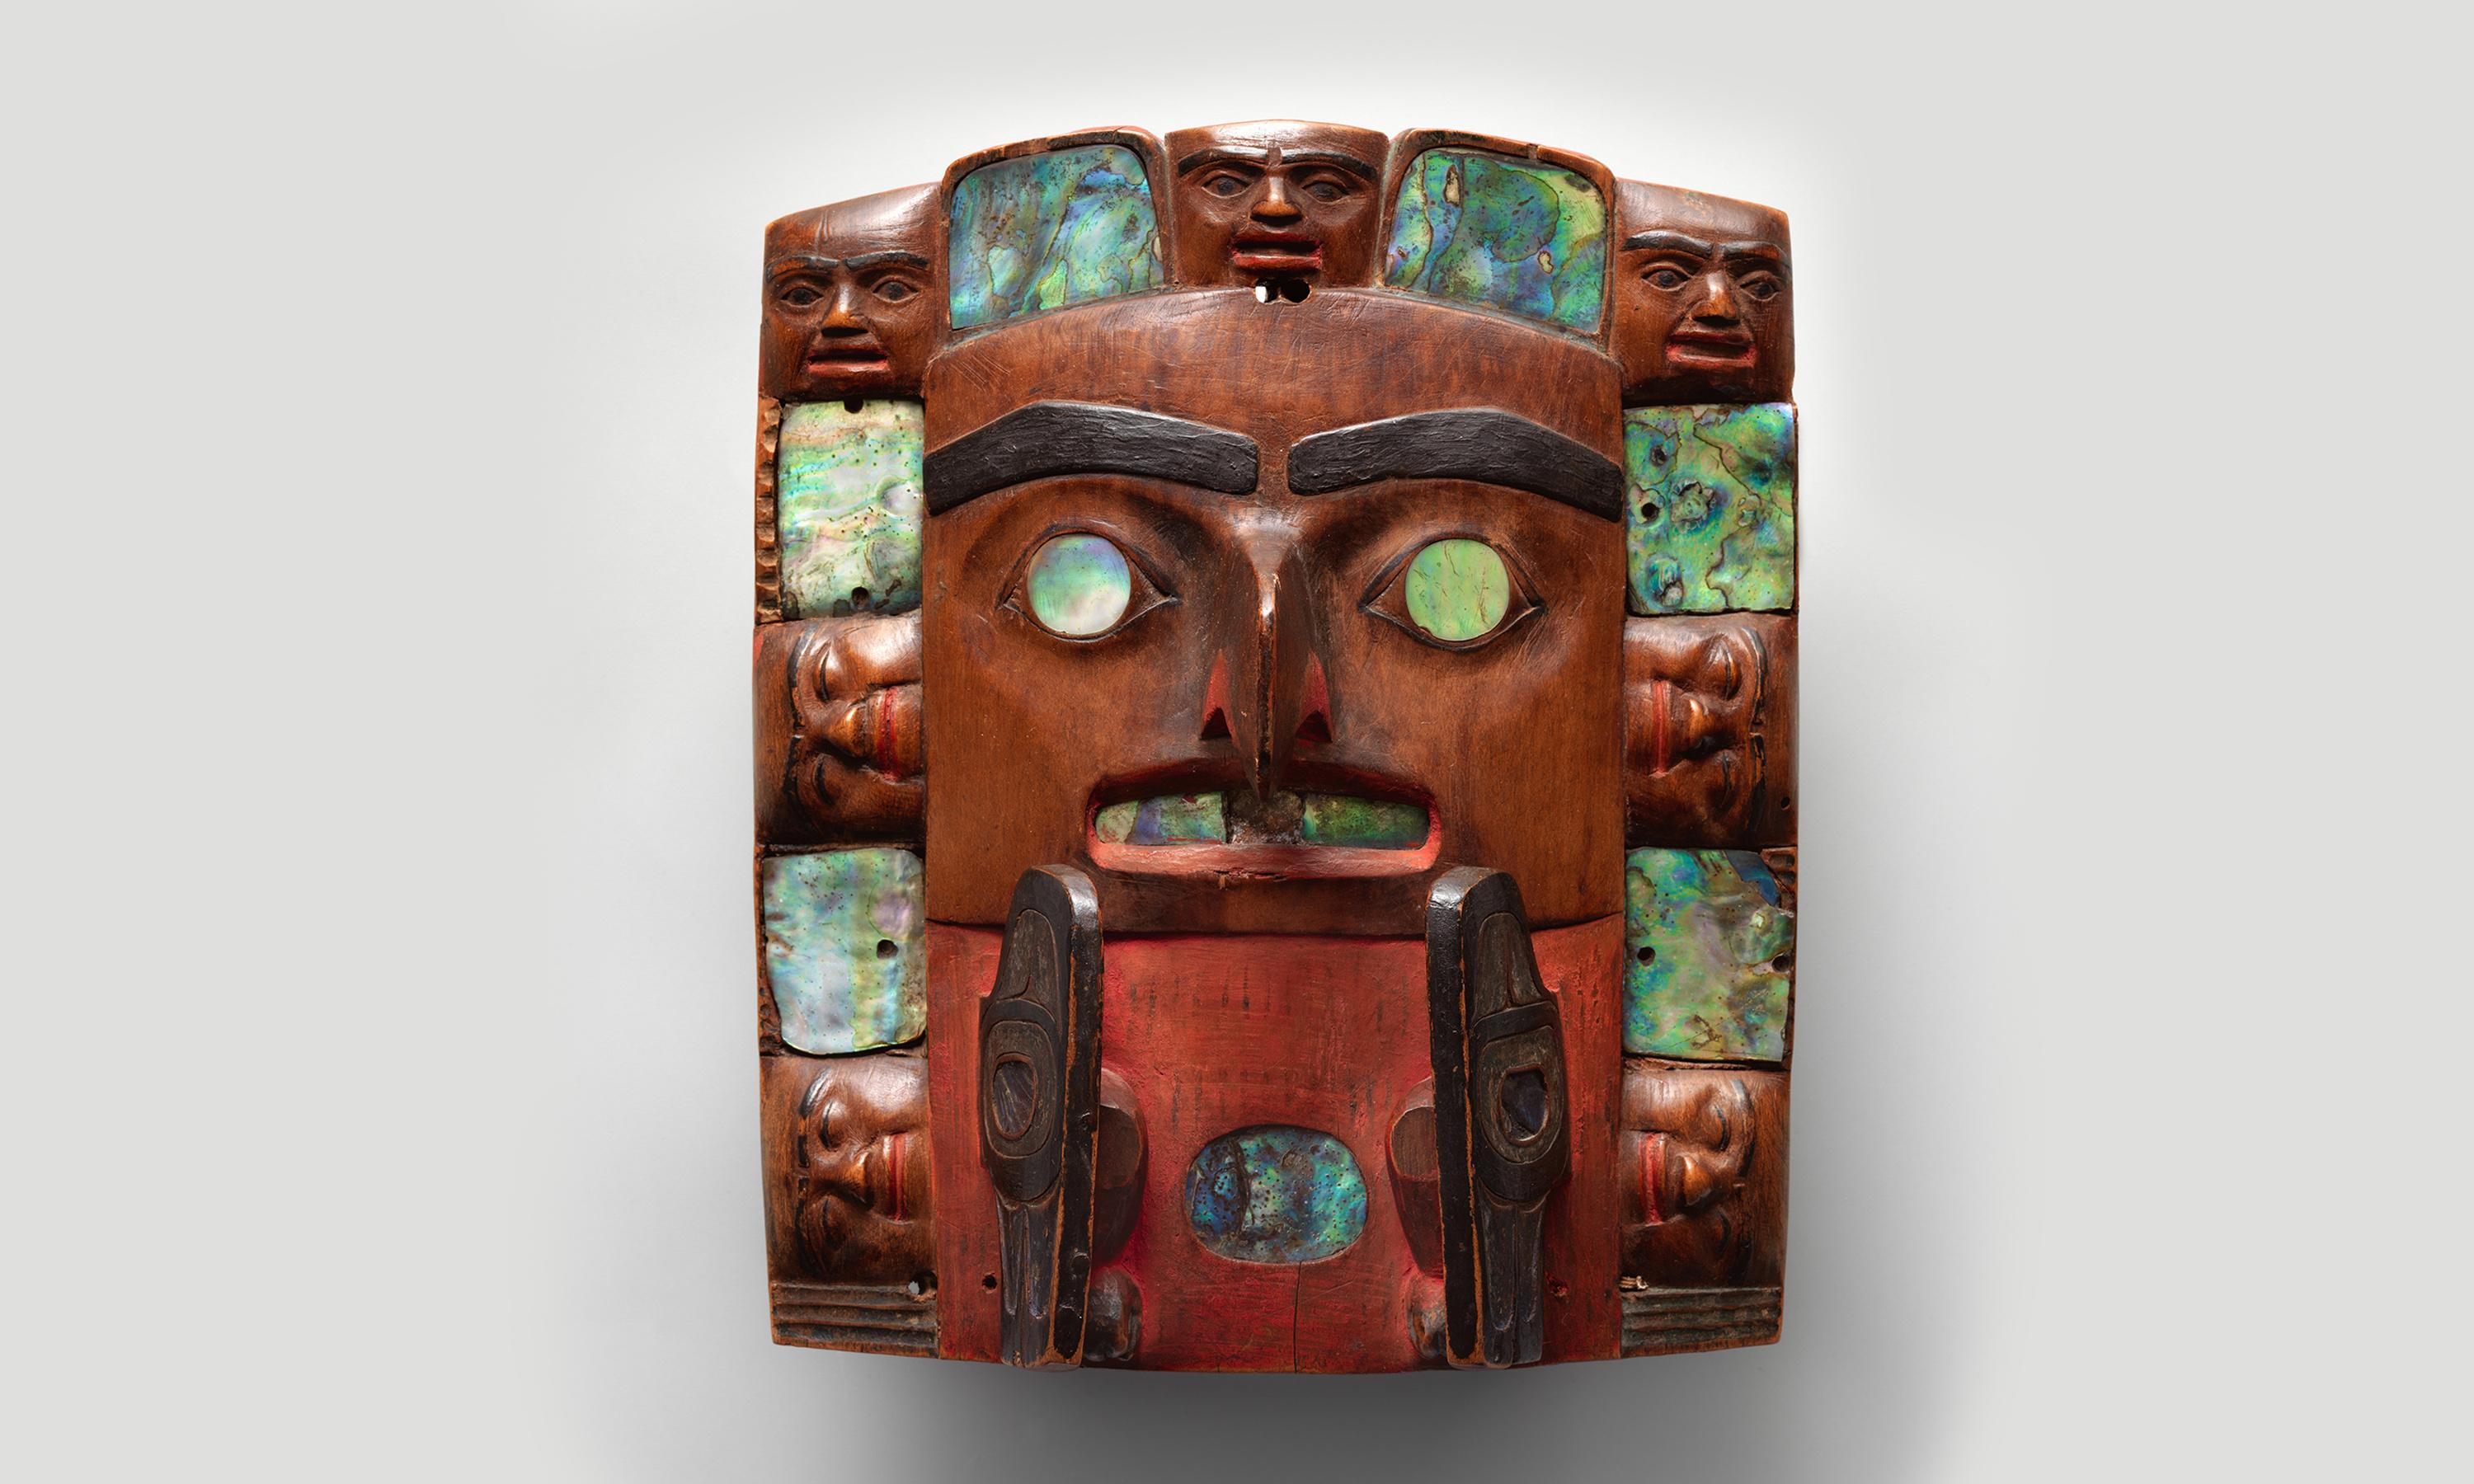 'These aren't extinct cultures' – indigenous art gets a stage at the Met